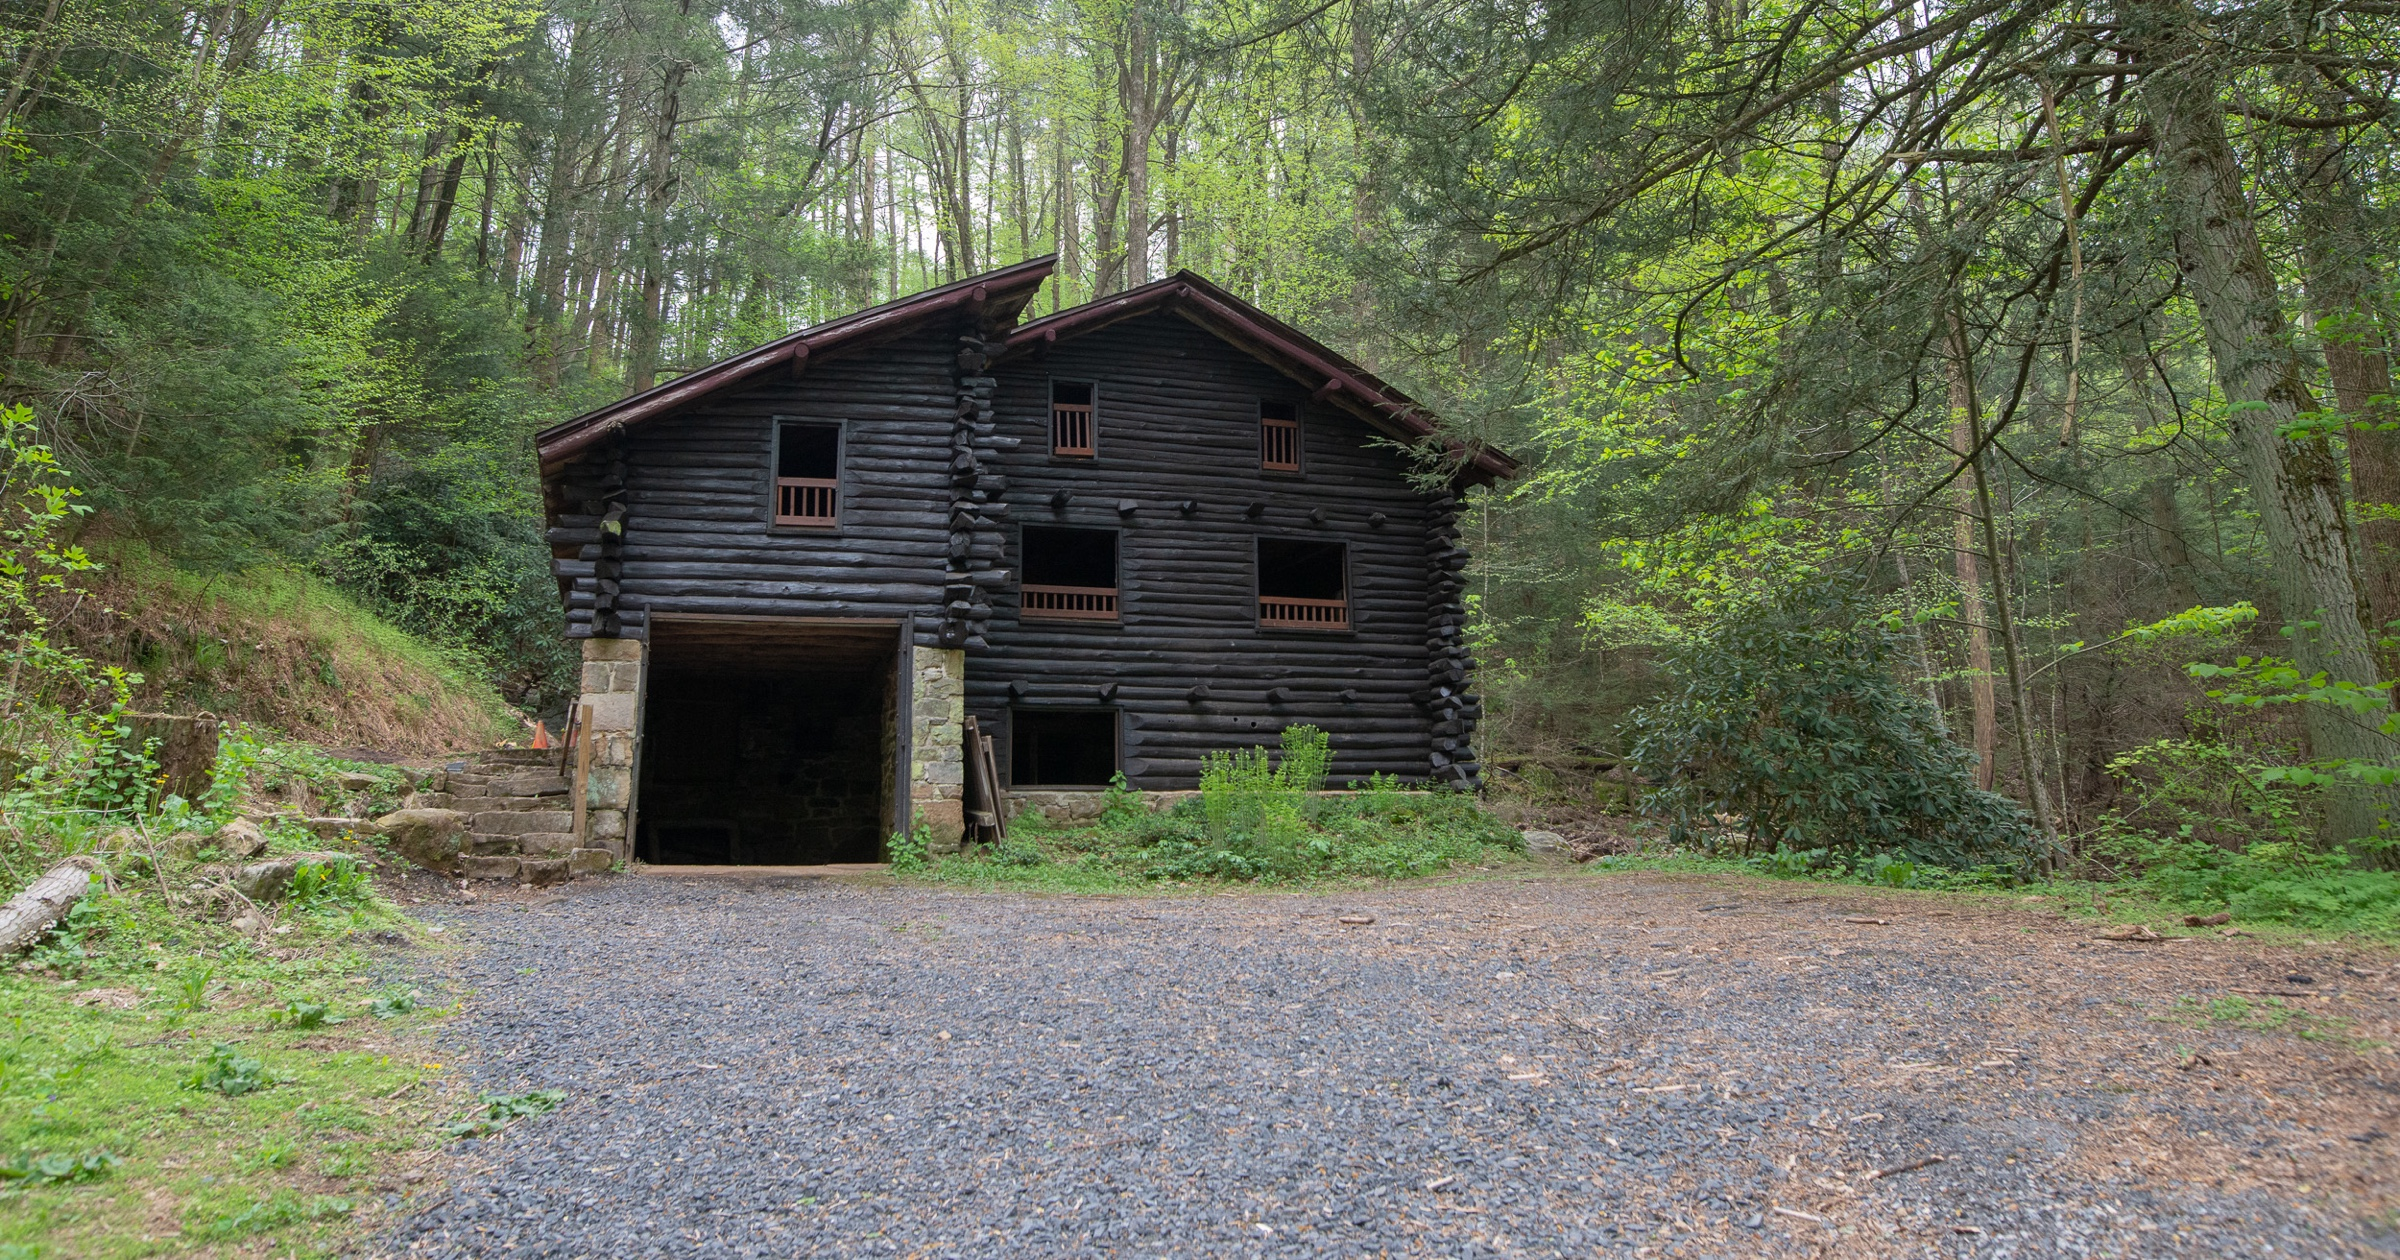 How to visit Bordner's Cabin at Swatara State Park [Photo Story]